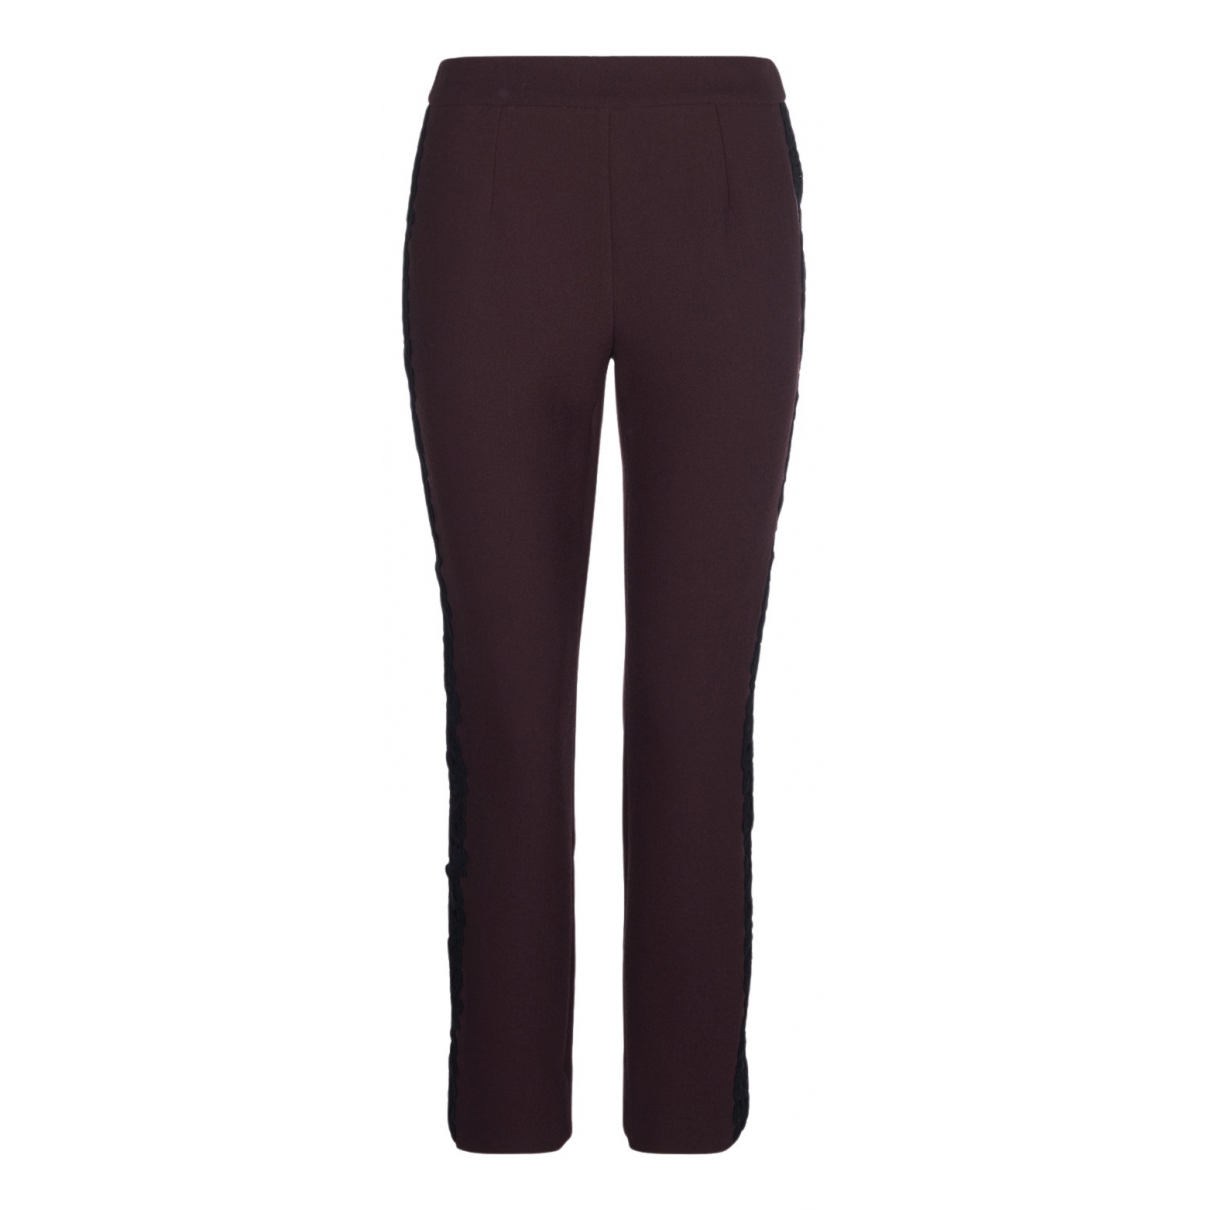 Dolce & Gabbana N Multicolour Wool Trousers for Women 8 UK